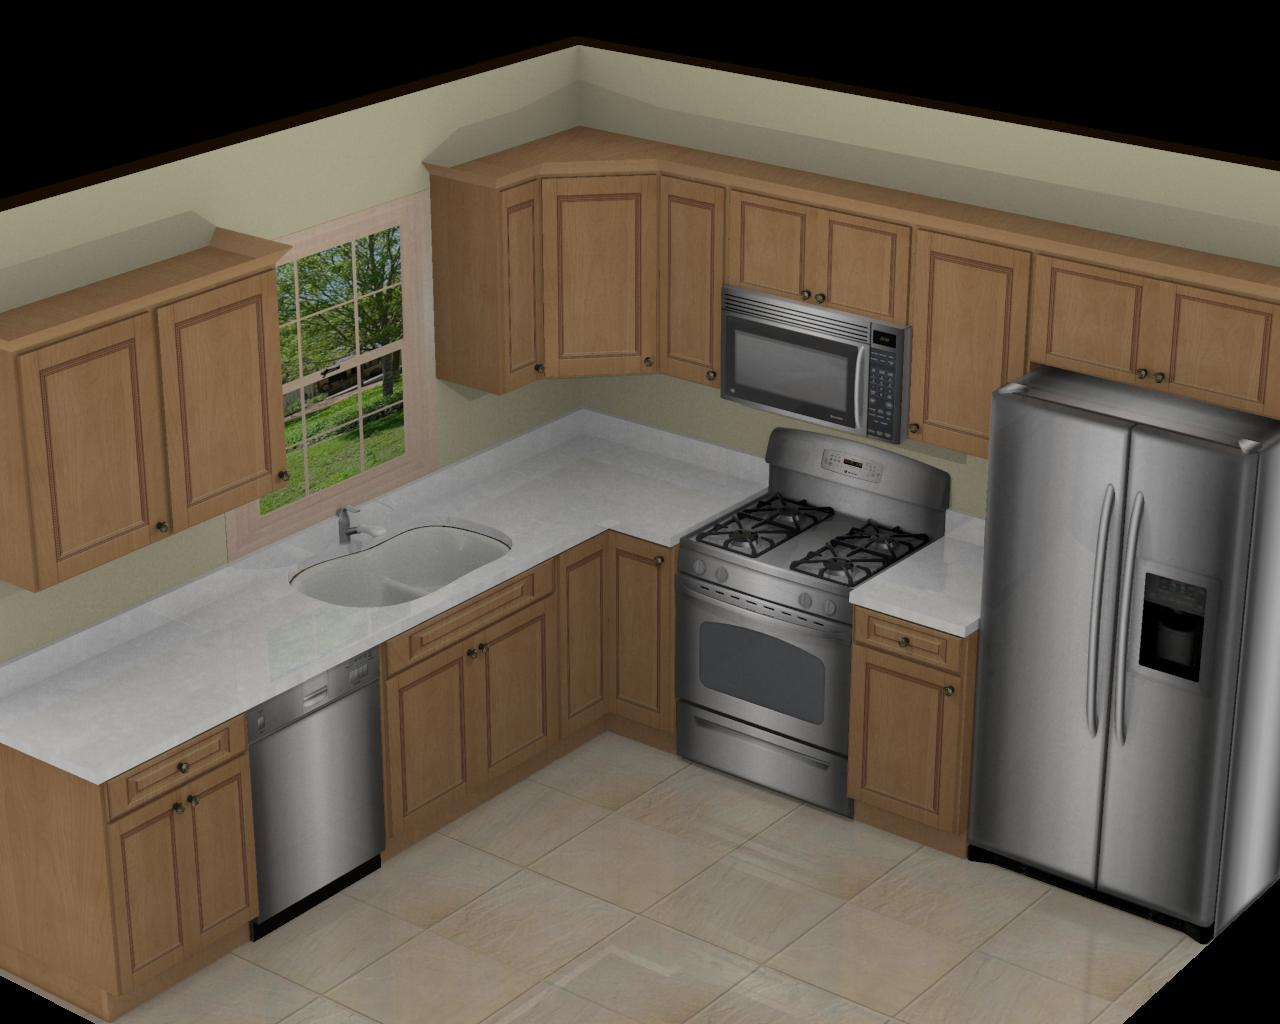 Foundation dezin decor 3d kitchen model design for Pictures of kitchen plans